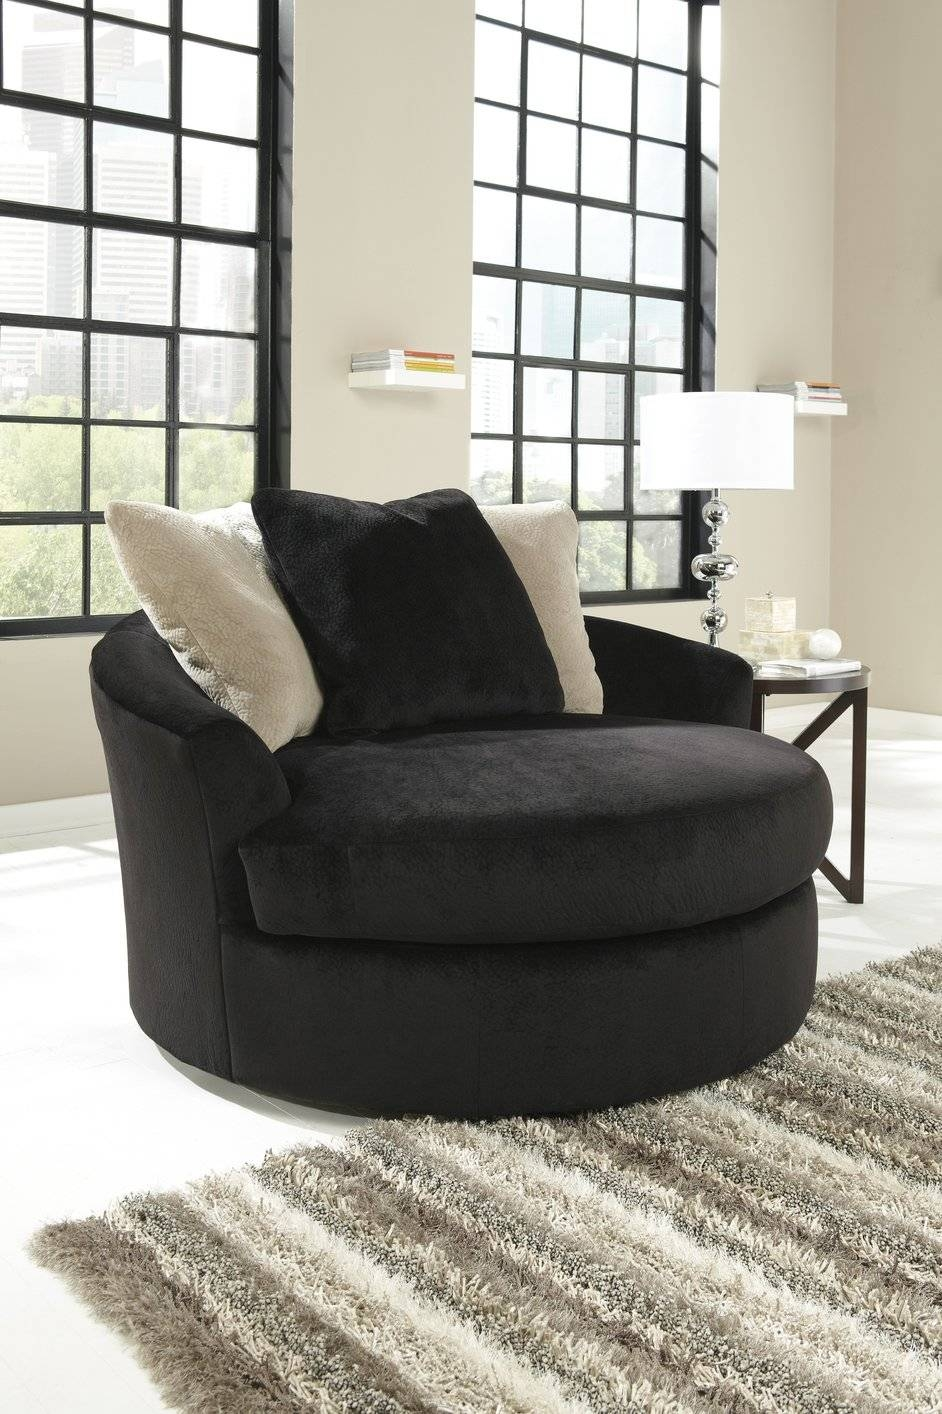 Rio Corner Sofa Groupon Goods Swivel Sofa Chair ~ Hmmi in Spinning Sofa Chairs (Image 15 of 30)